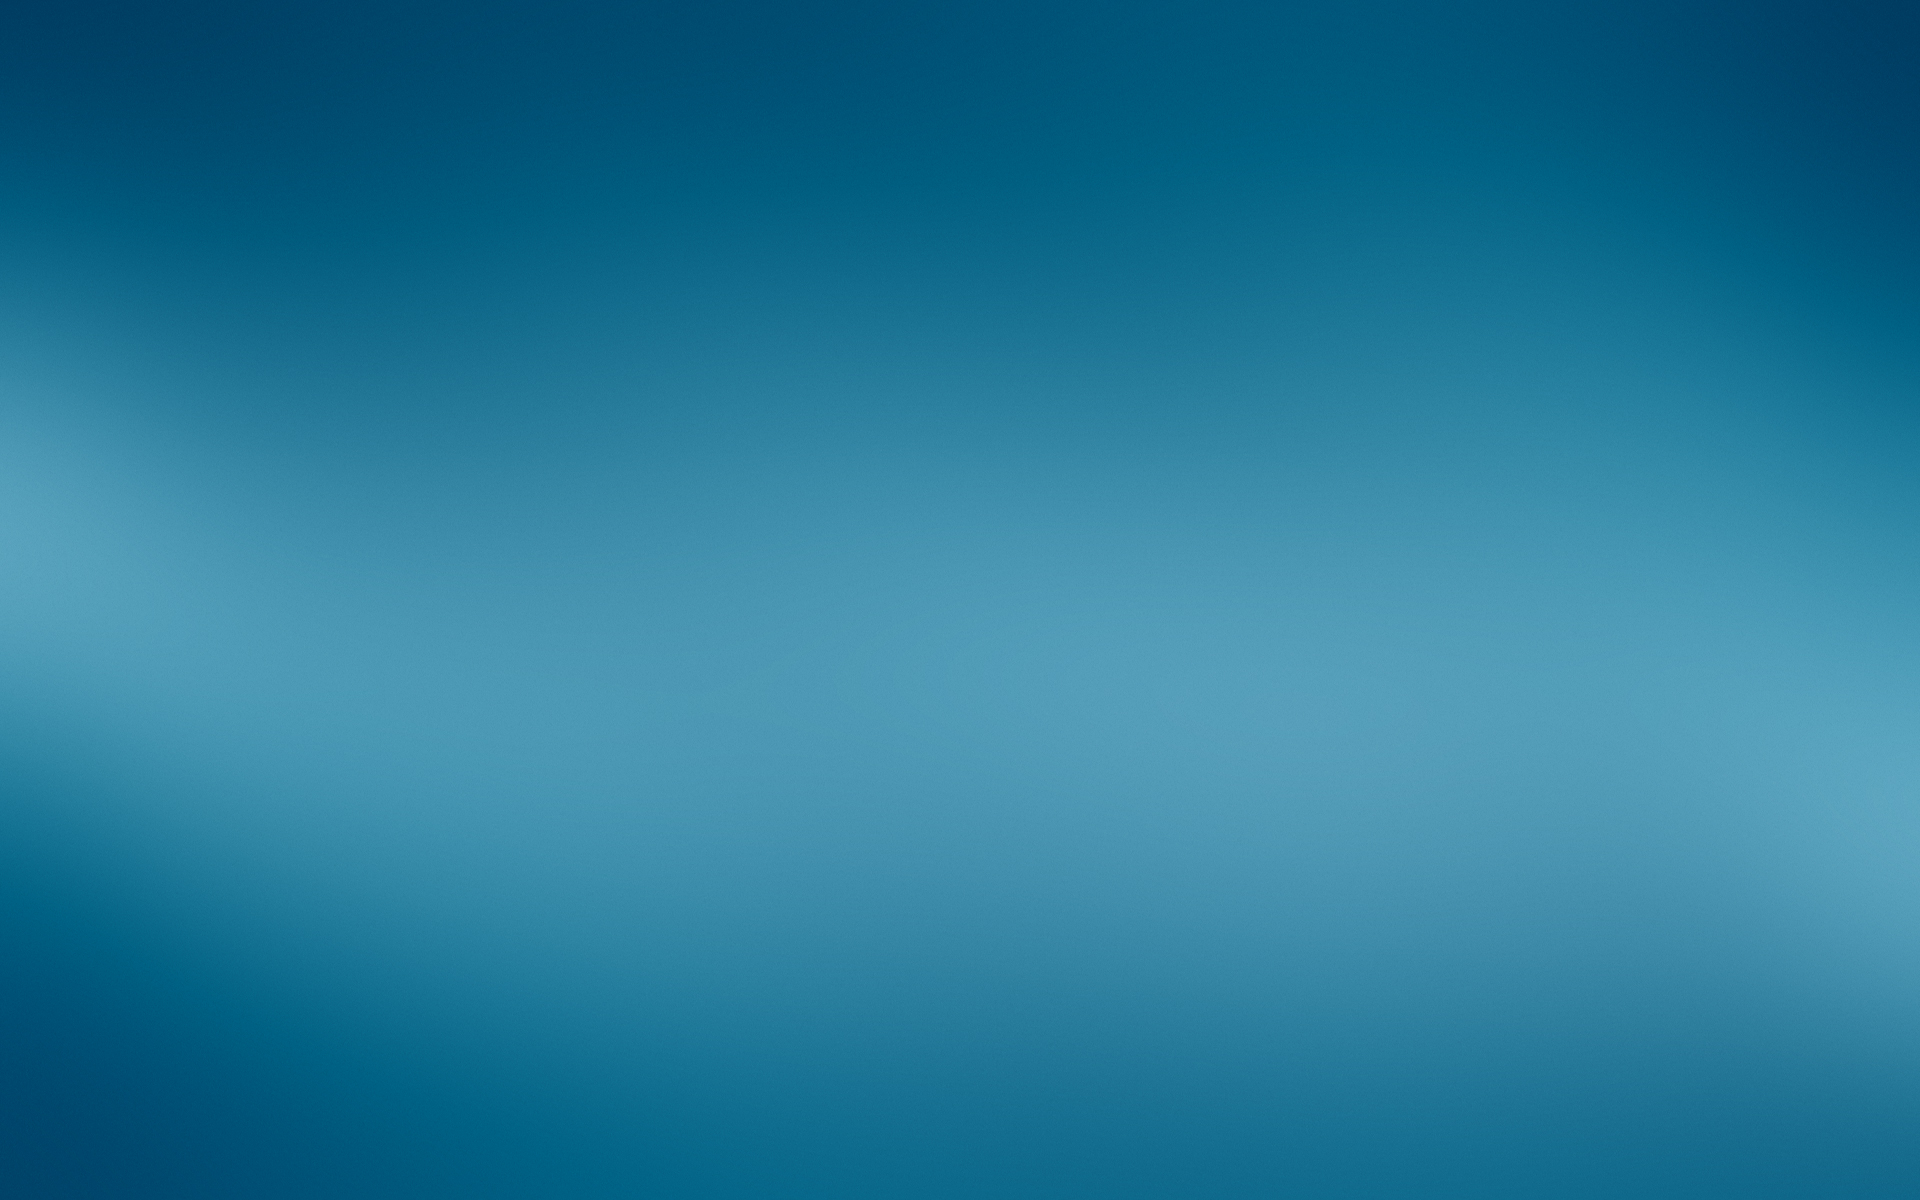 Wallpaper Something Blue By Digitalsoft